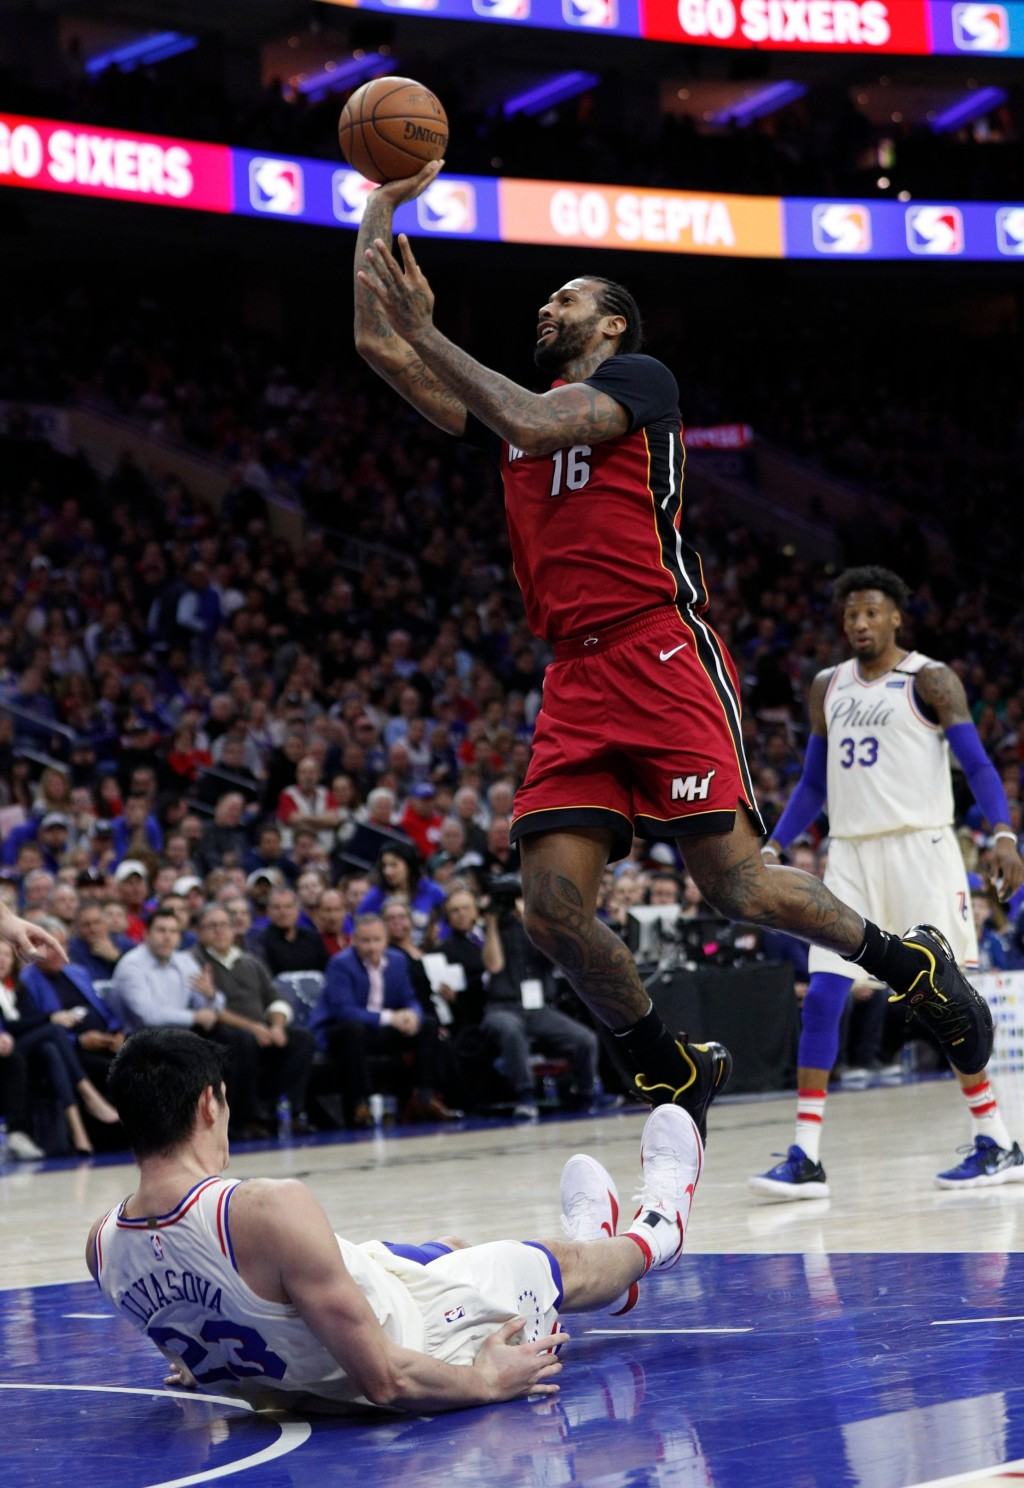 Miami Heat's James Johnson, right, shoots and draws the foul call on Philadelphia 76ers' Ersan Ilyasova, left, of Turkey, during the first half in Gam